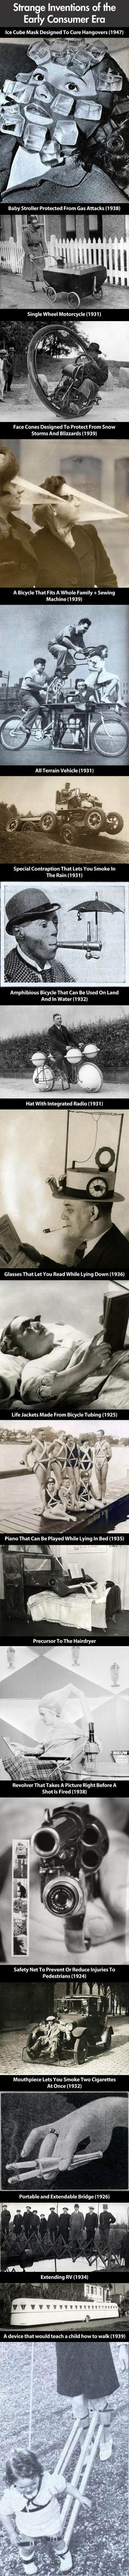 Some of the strangest inventions of all time